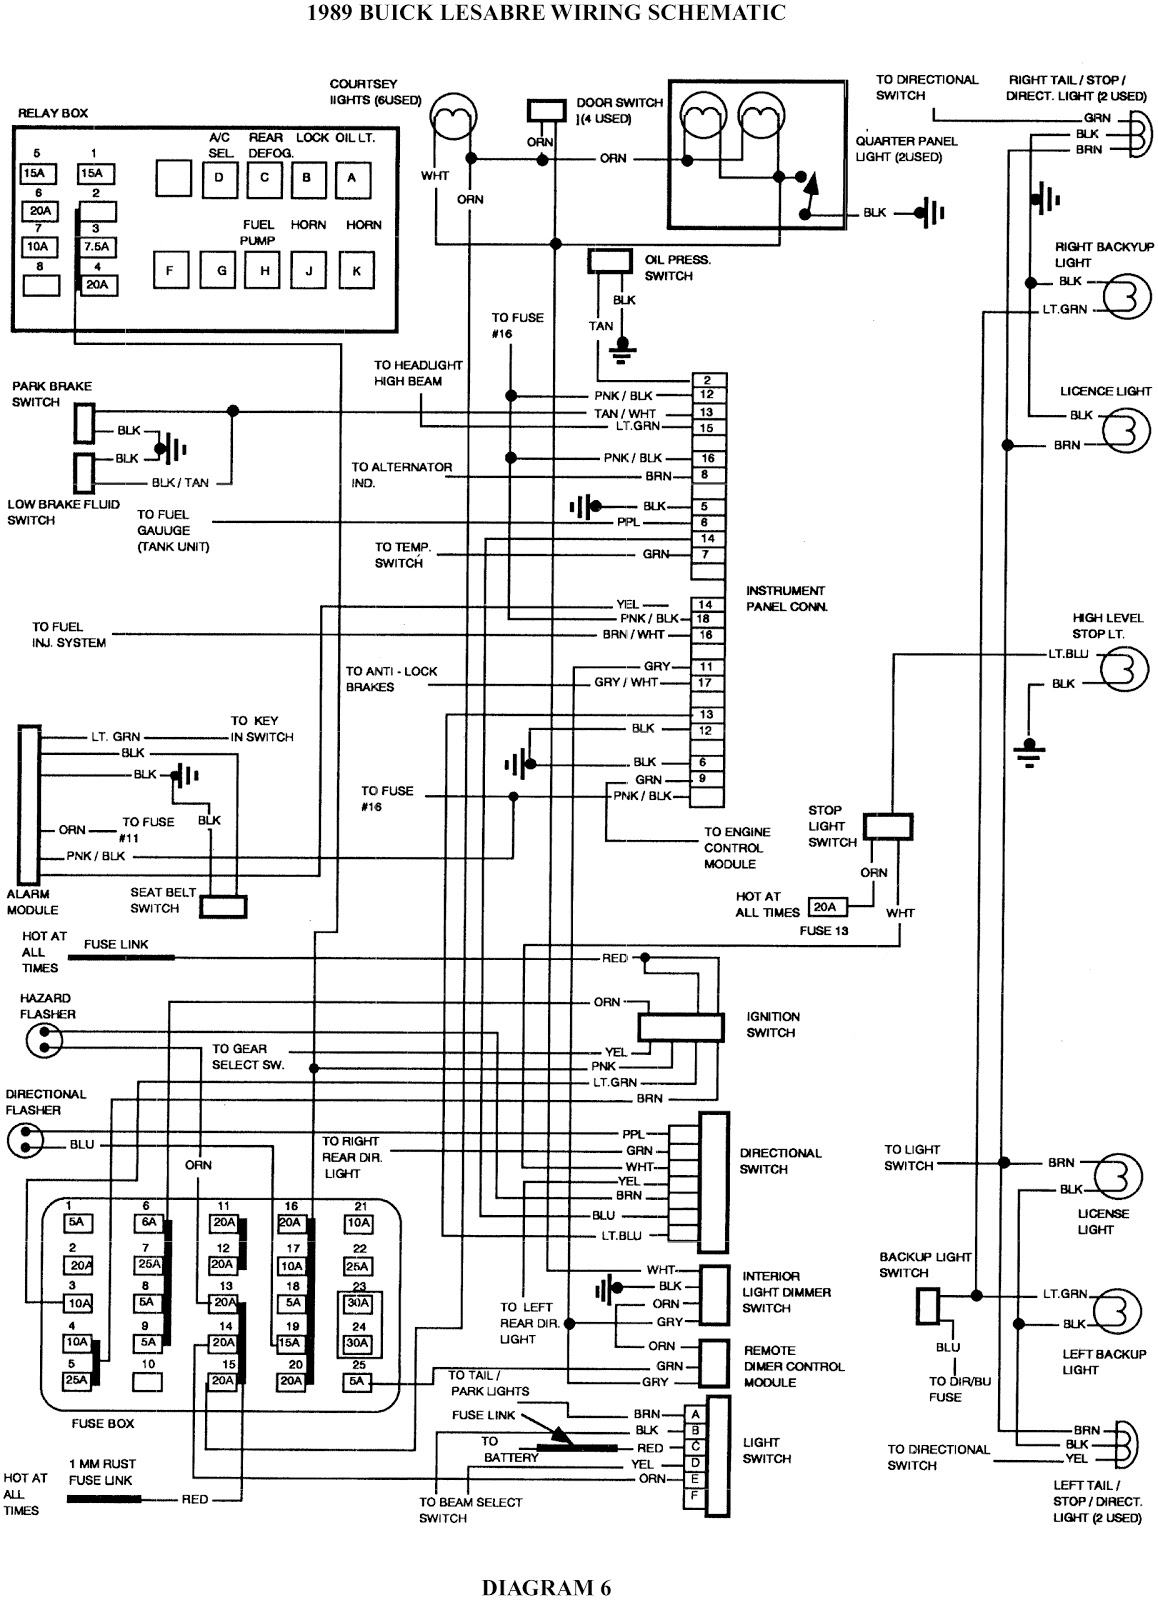 Tumbler Switch Wiring Diagram Buick Lesabre